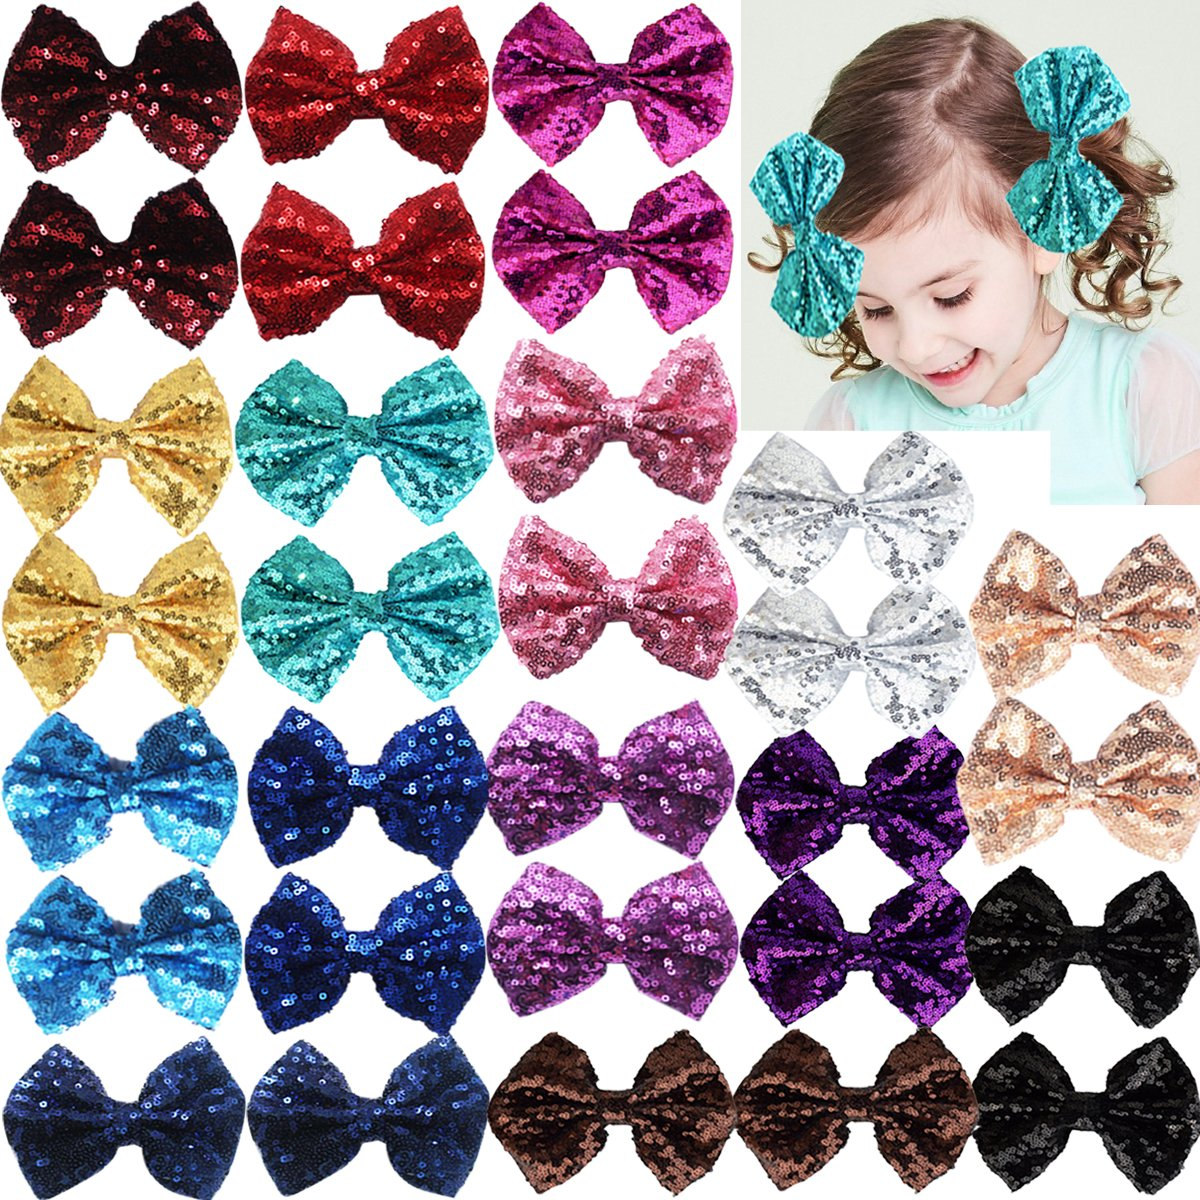 Party Festival Baby Girls Sparkling Bows Clips-30 Piece Glitter Sequins 4'' Hair Bows Alligator Hair Clips for Girls Baby Children Toddlers